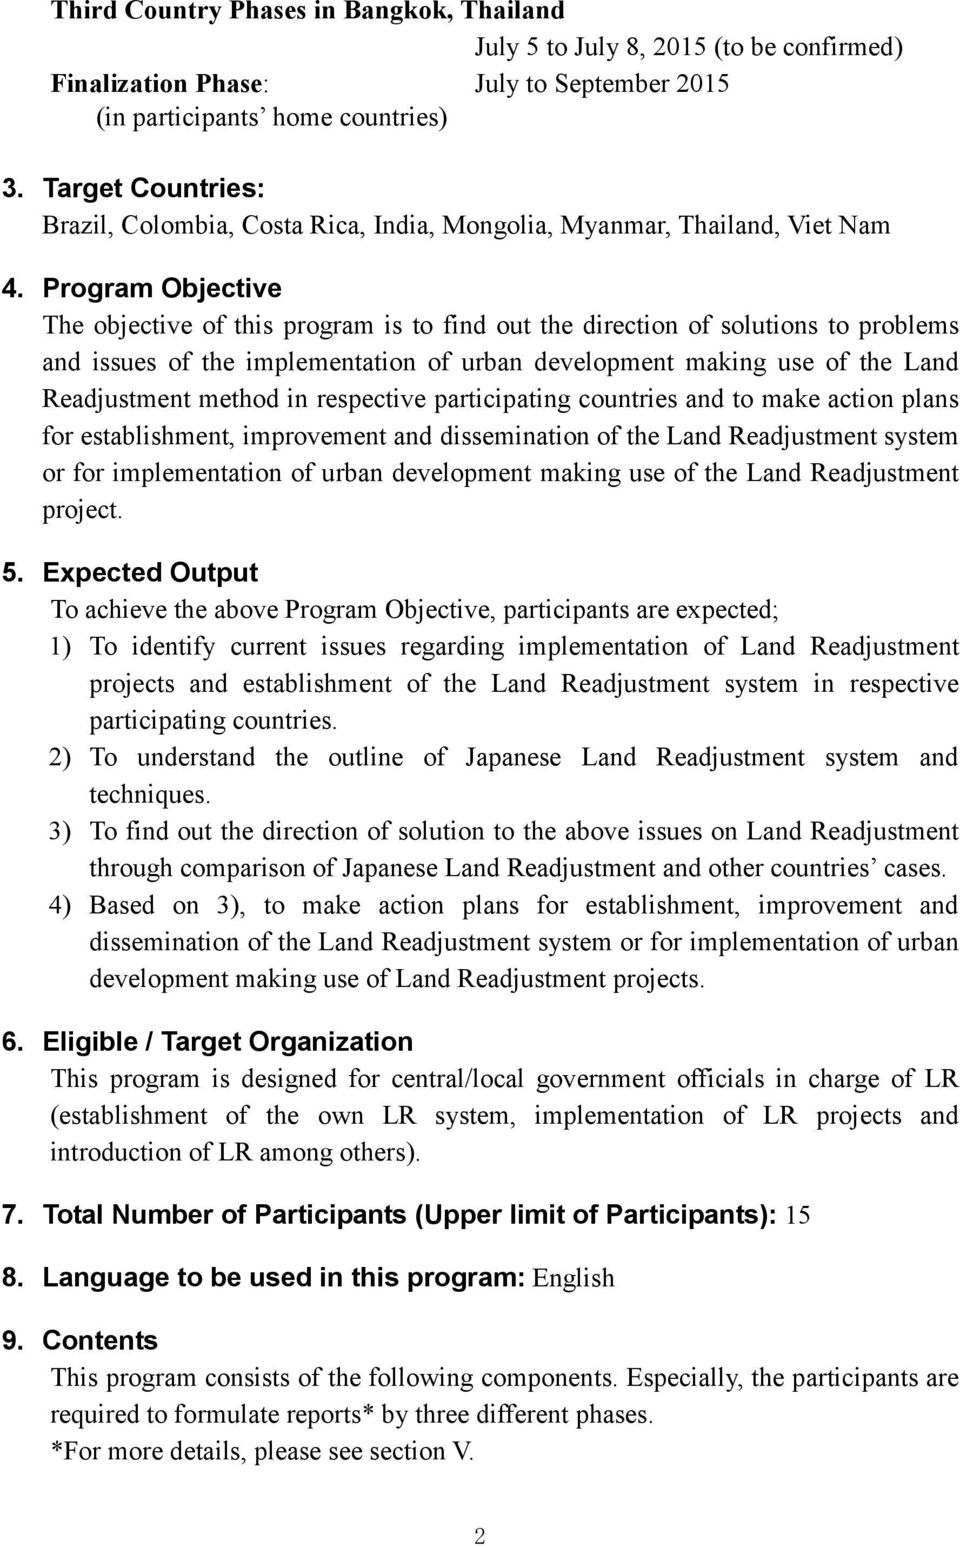 Program Objective The objective of this program is to find out the direction of solutions to problems and issues of the implementation of urban development making use of the Land Readjustment method